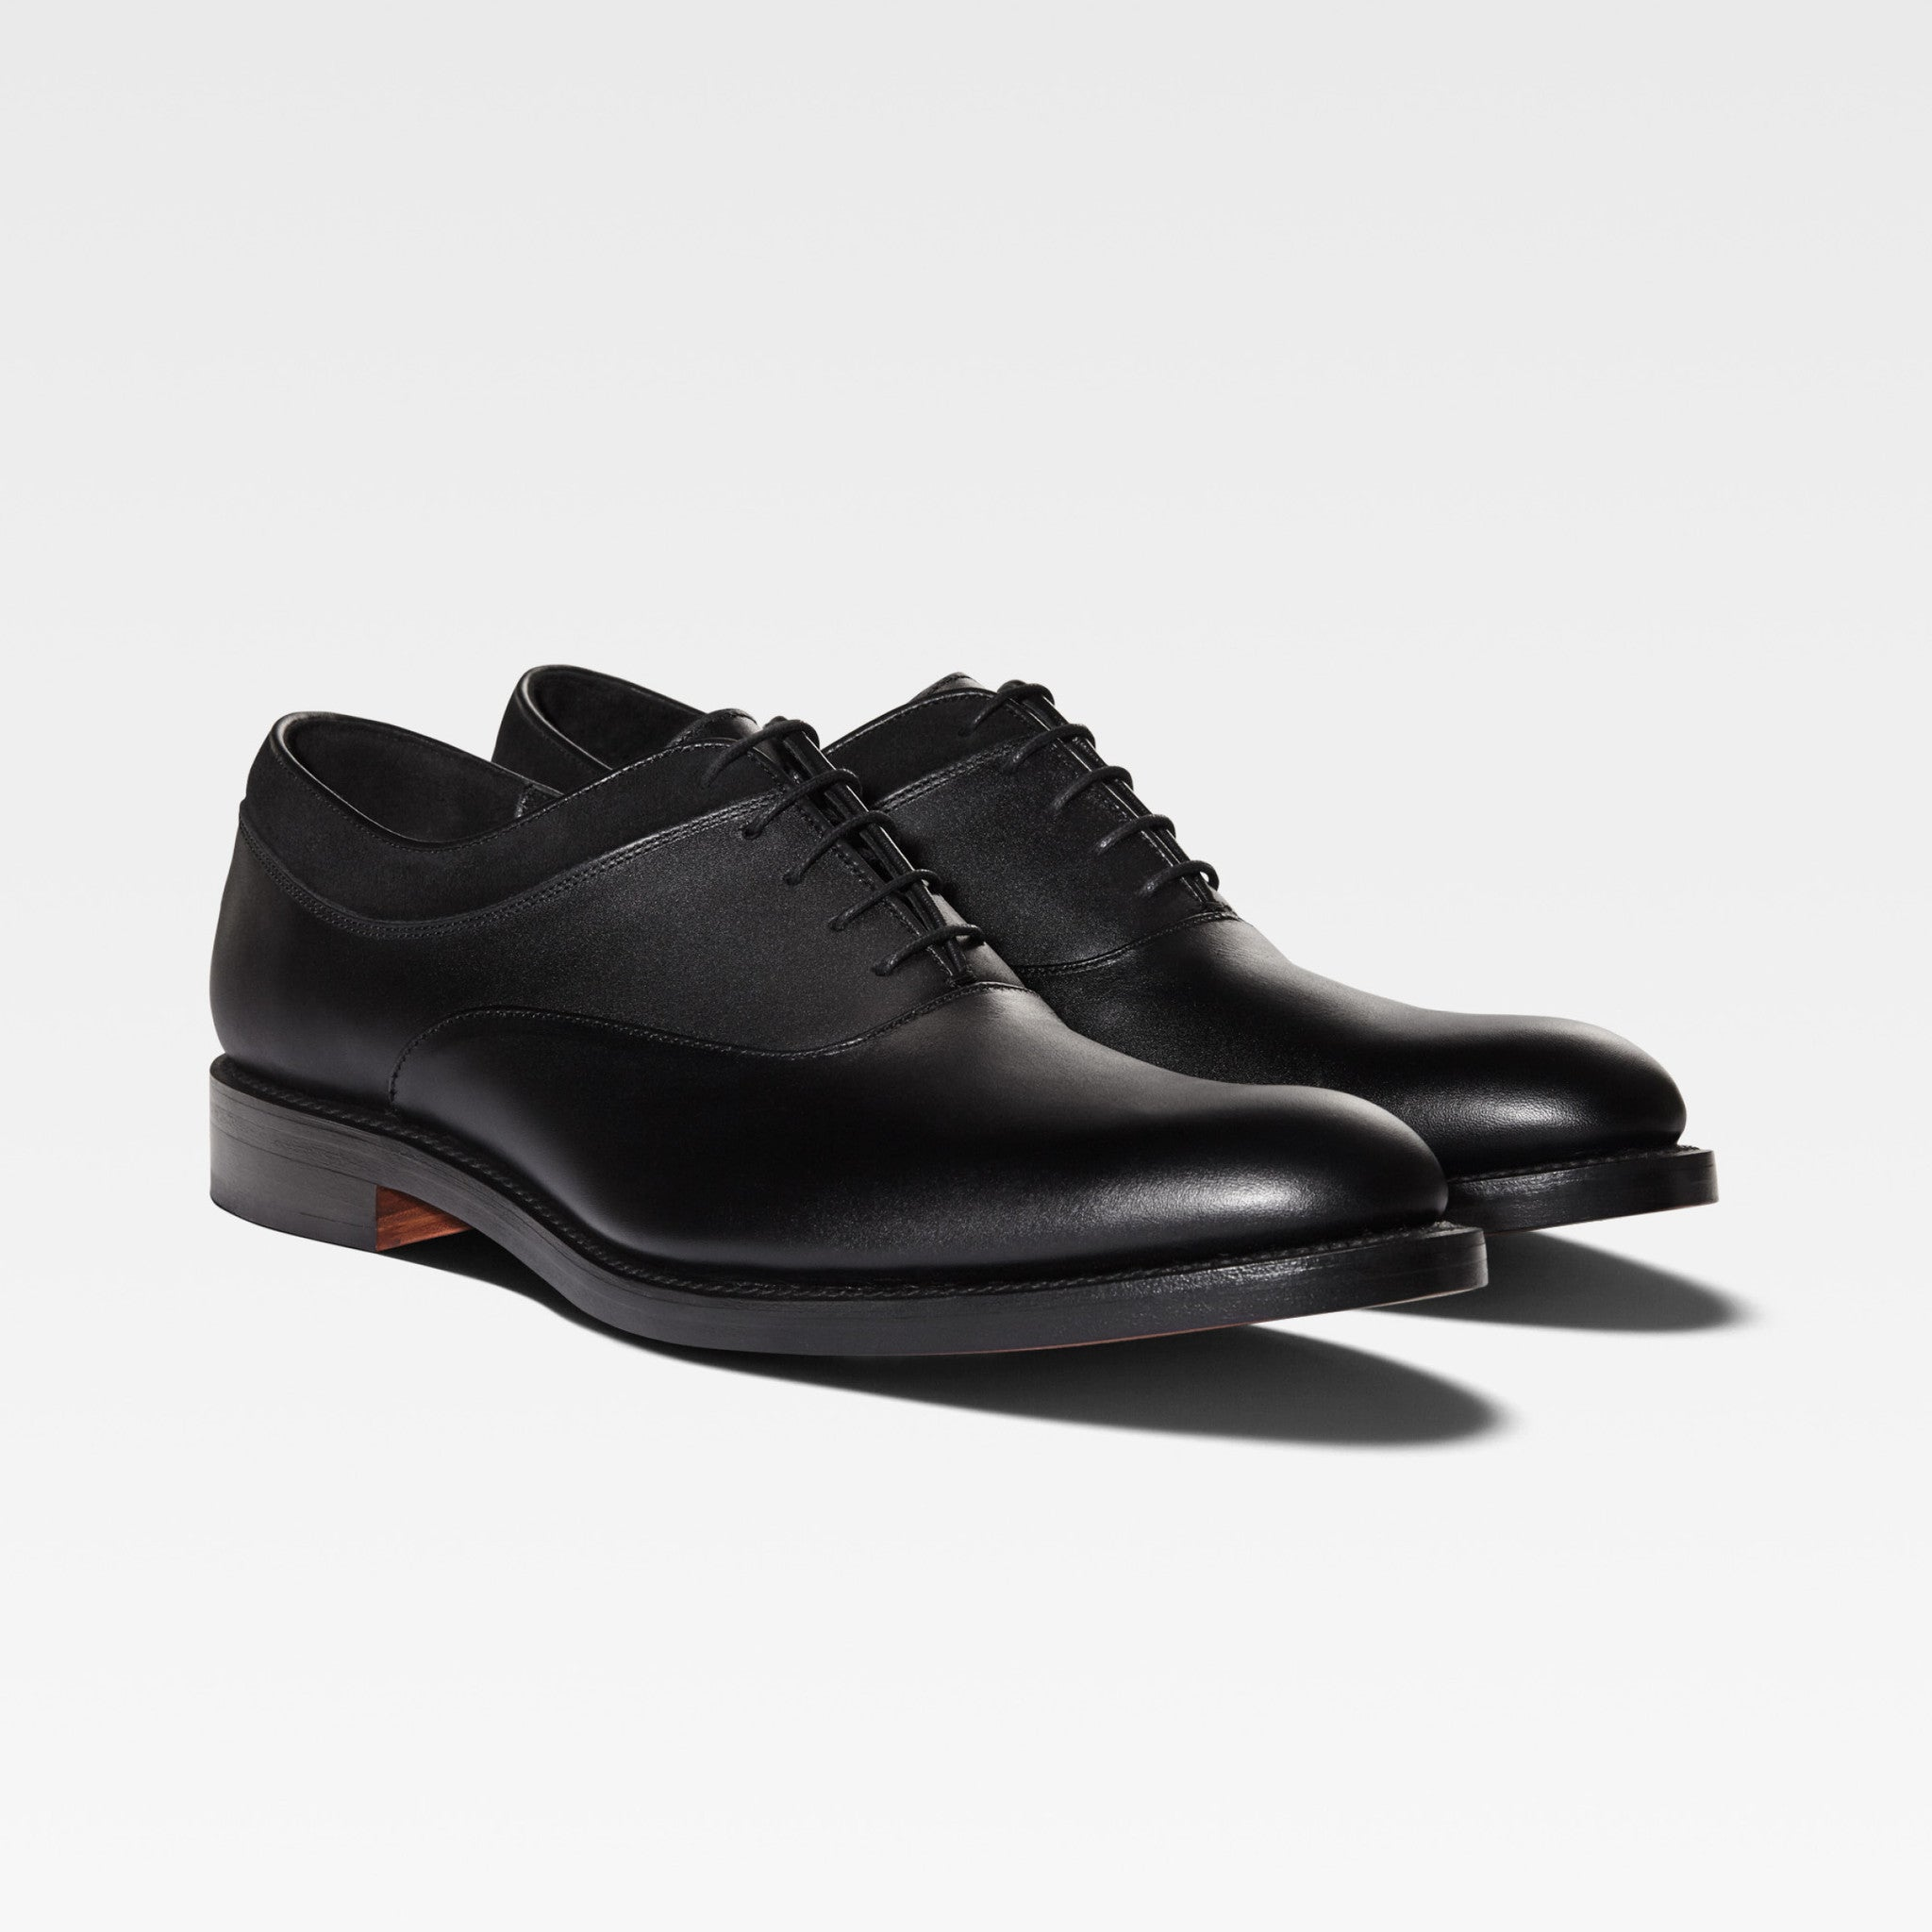 MAGNUS | Black Leather Oxford Shoes